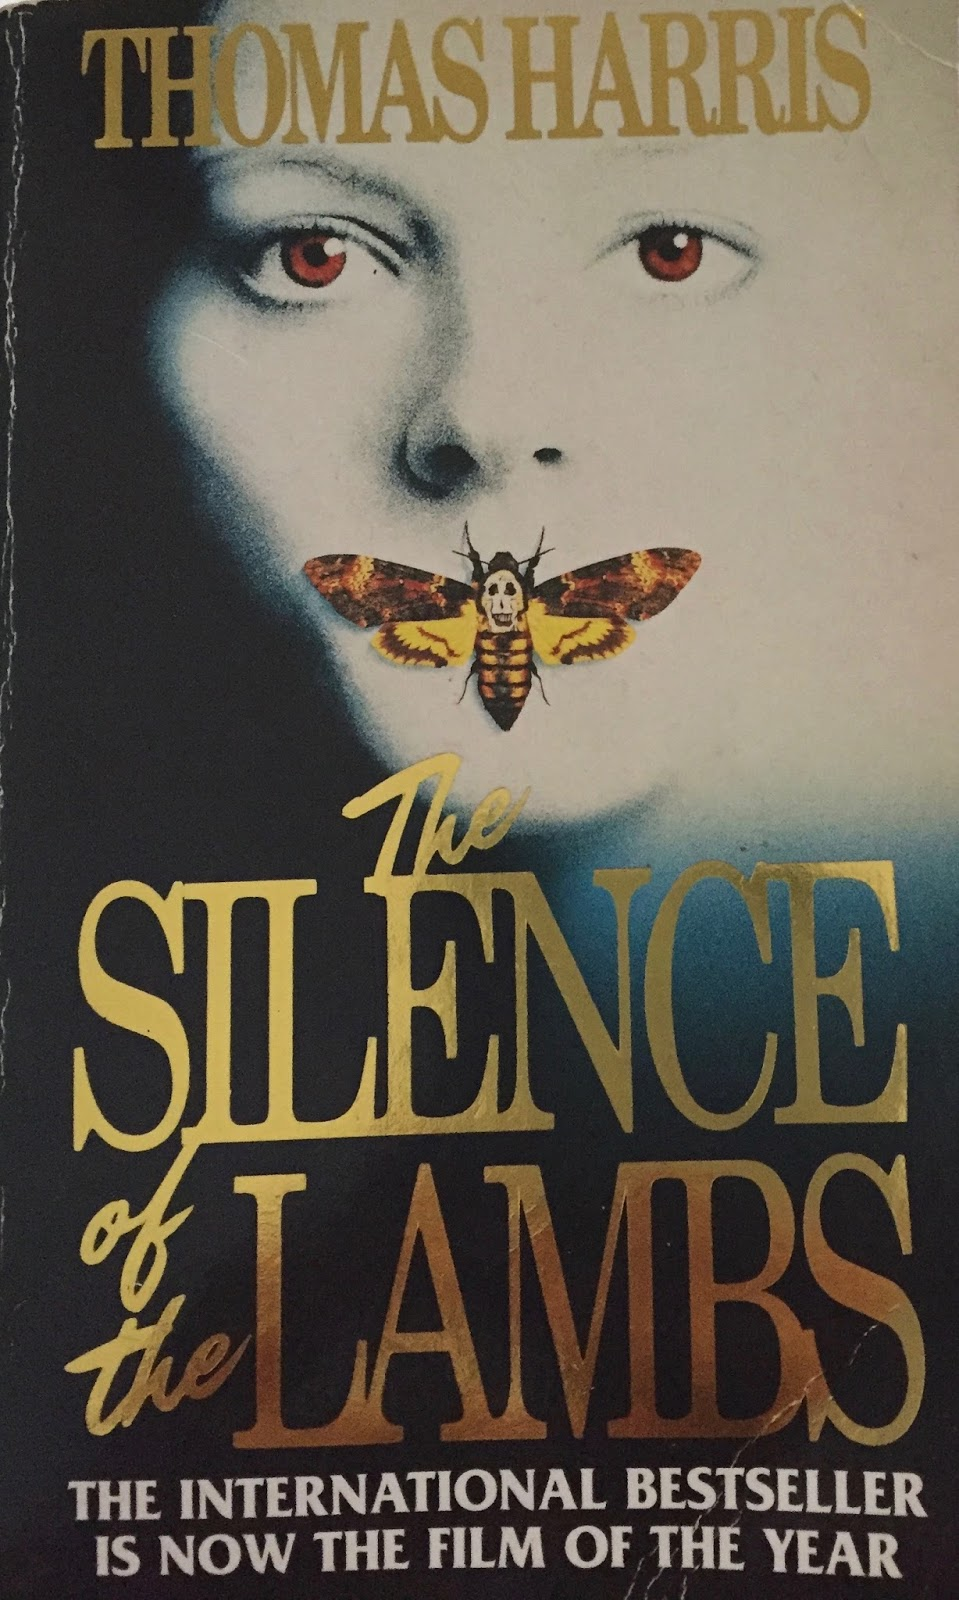 a review of thomas harriss novel silence of the lambs Thomas harris (1988) 'the silence of the lambs', first edition signed to the title page published by st martin's press in the usa the basis for the iconic movie (1990) with the stellar cast.